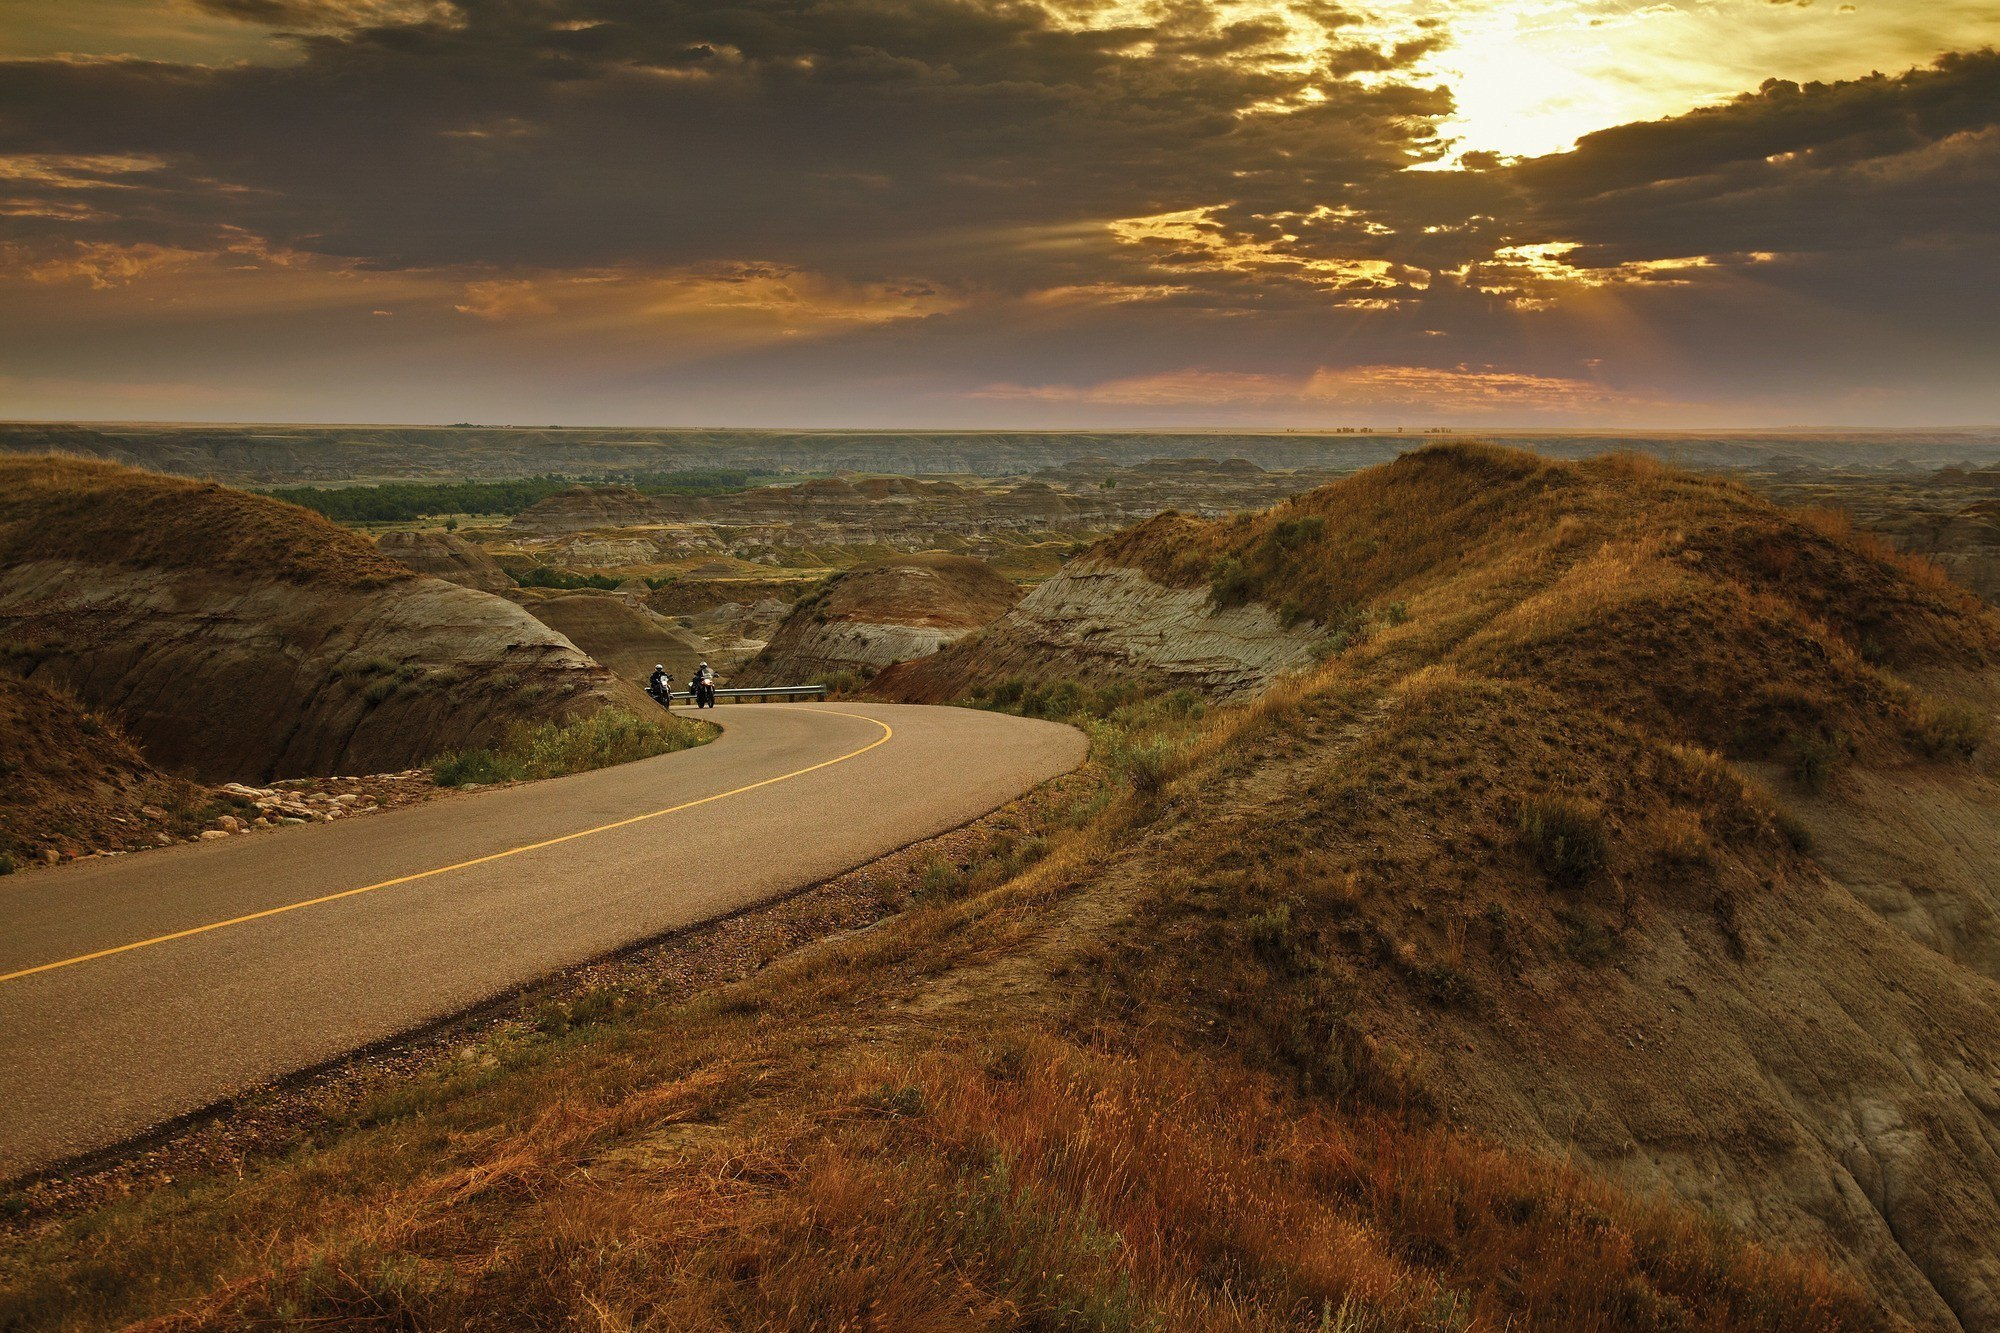 Dinosaur Provincial Park in the Canadian Badlands, Southern Alberta. Image Credit: Travel Alberta/Sean Thonson